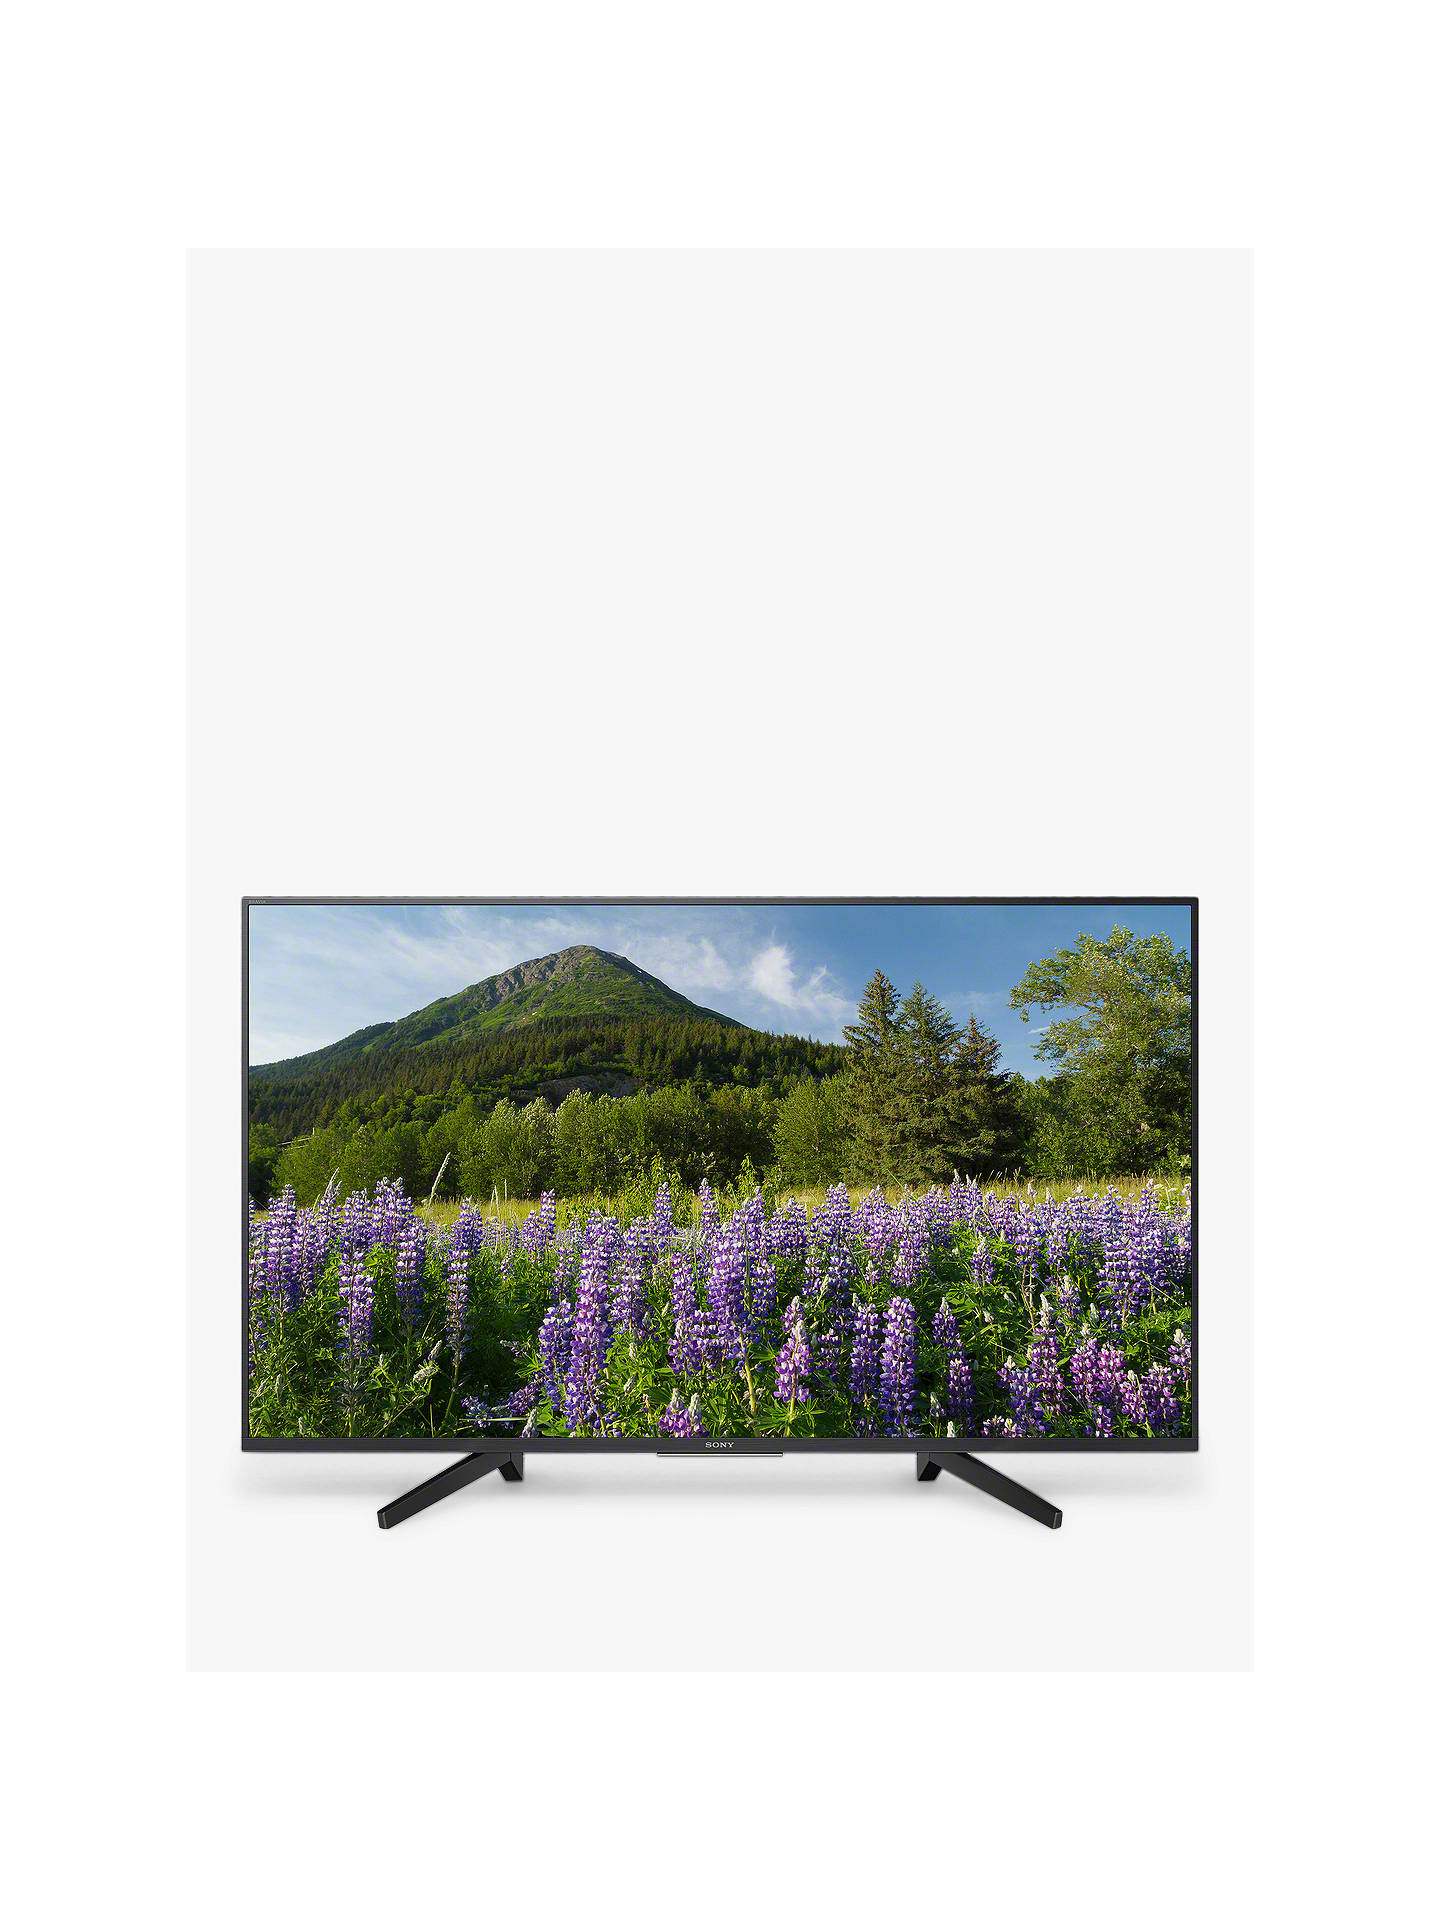 Sony Bravia KD43XF7093 LED HDR 4K Ultra HD Smart TV, 43